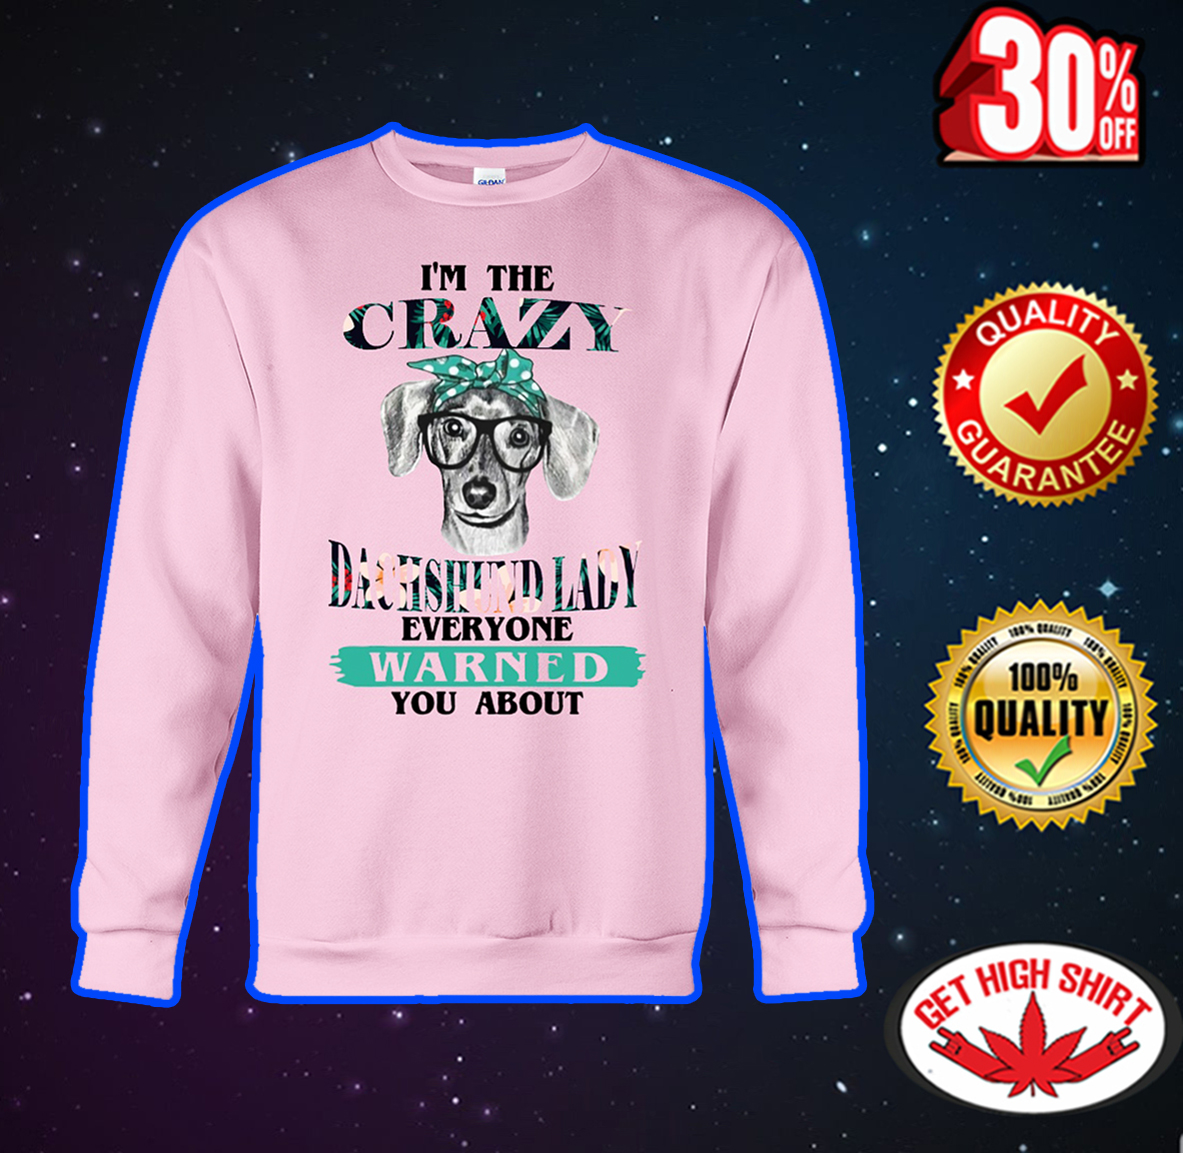 I'm the crazy dachshund lady everyone warned you about sweatshirt